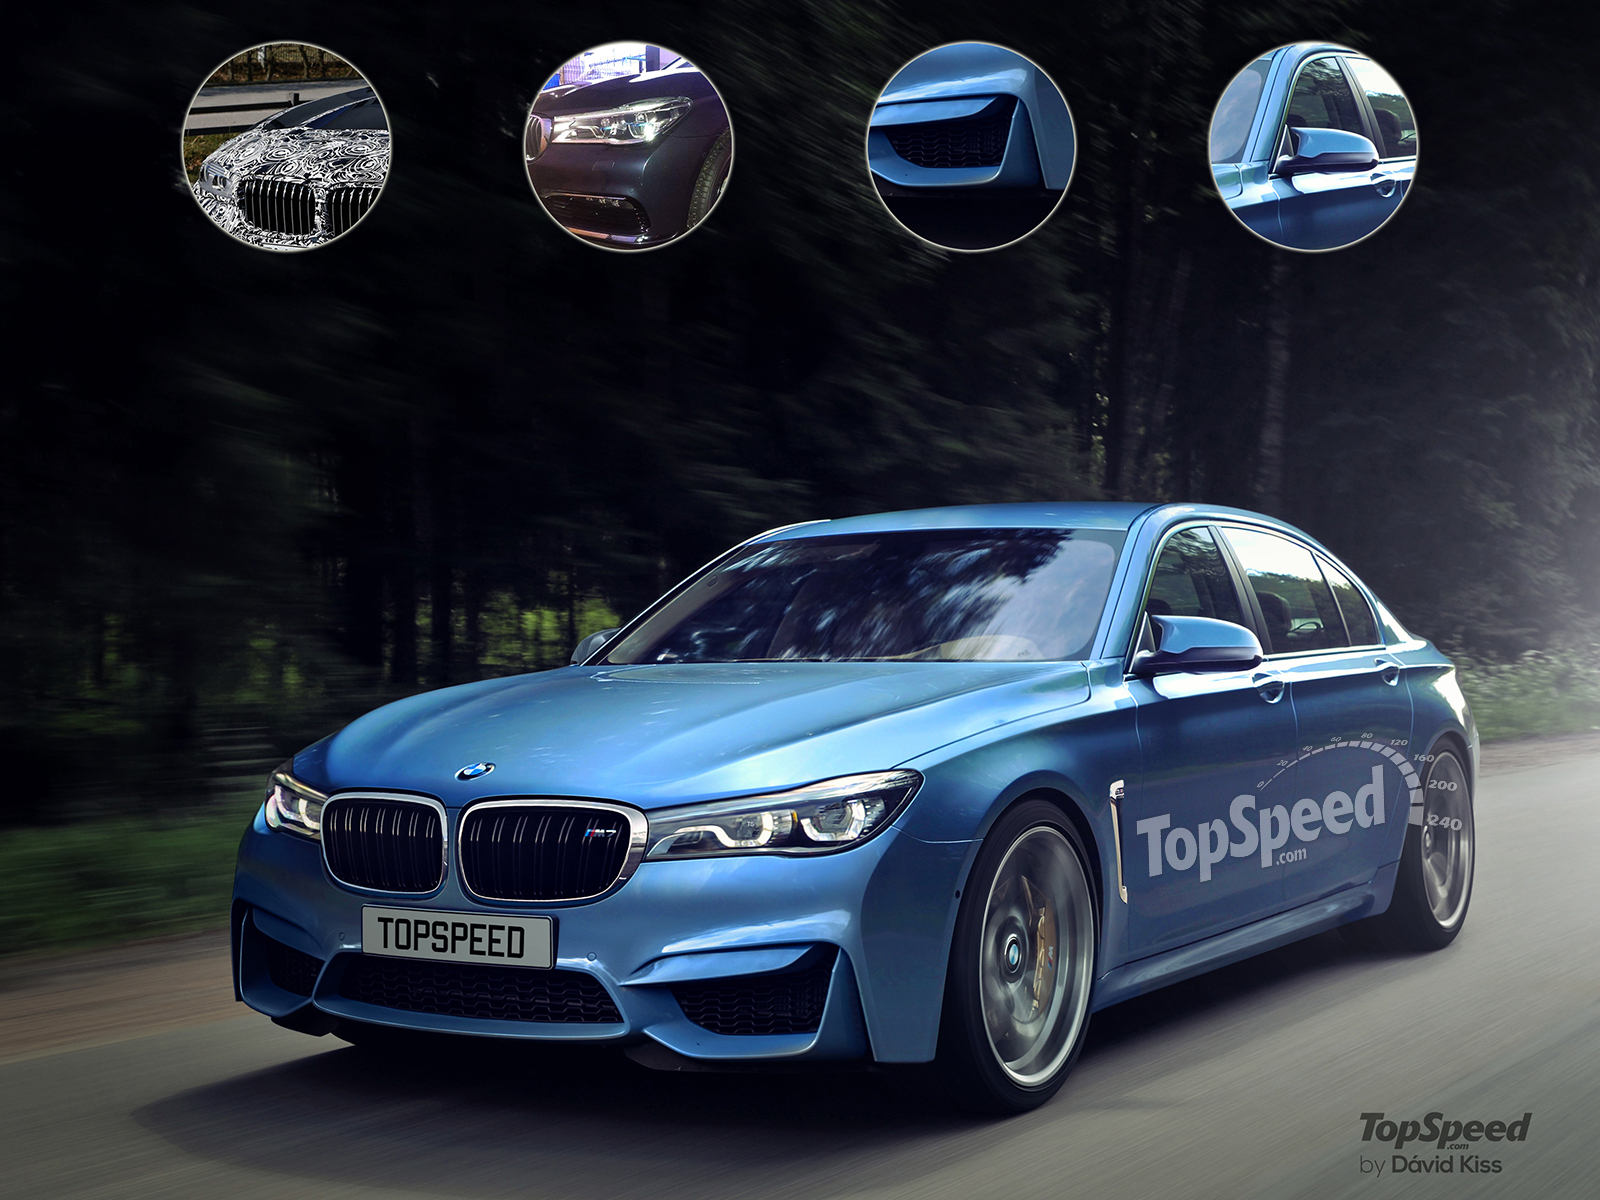 New Trademark Hints That We May Finally See A Real Bmw M7 Top Speed